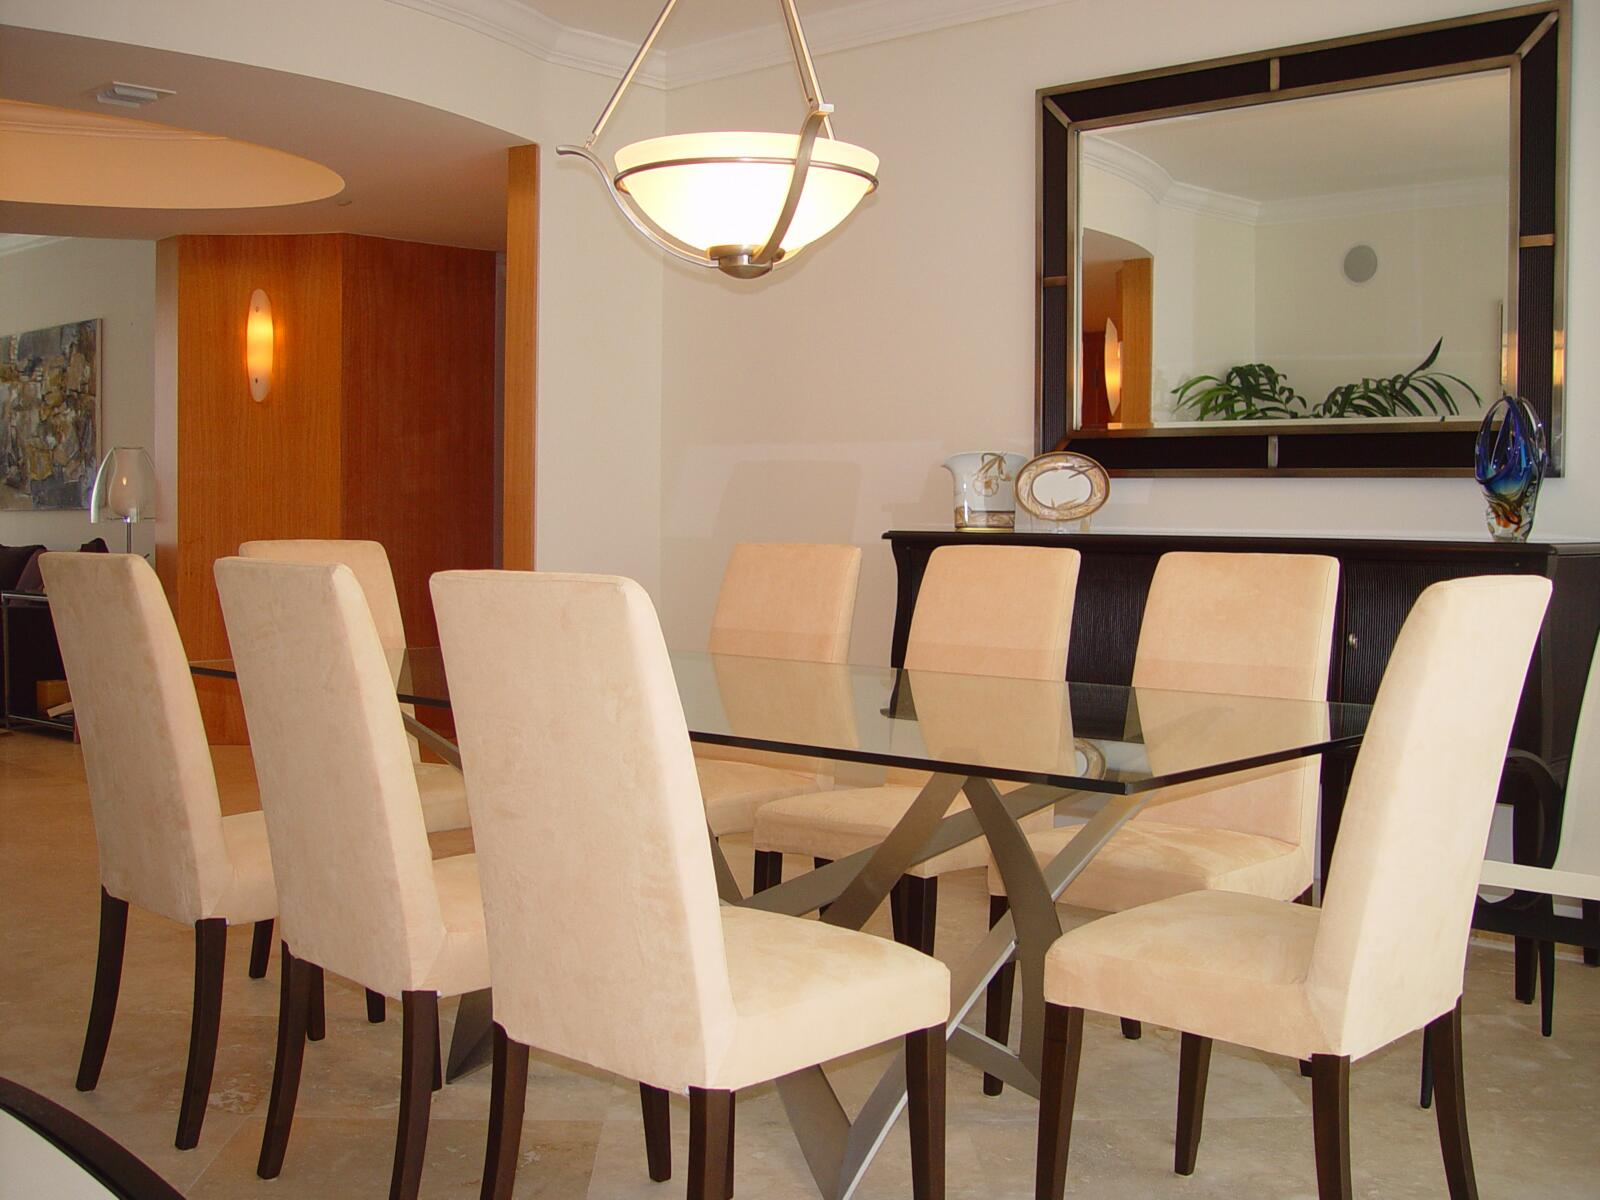 Miami dining room interior design services for Interior design services